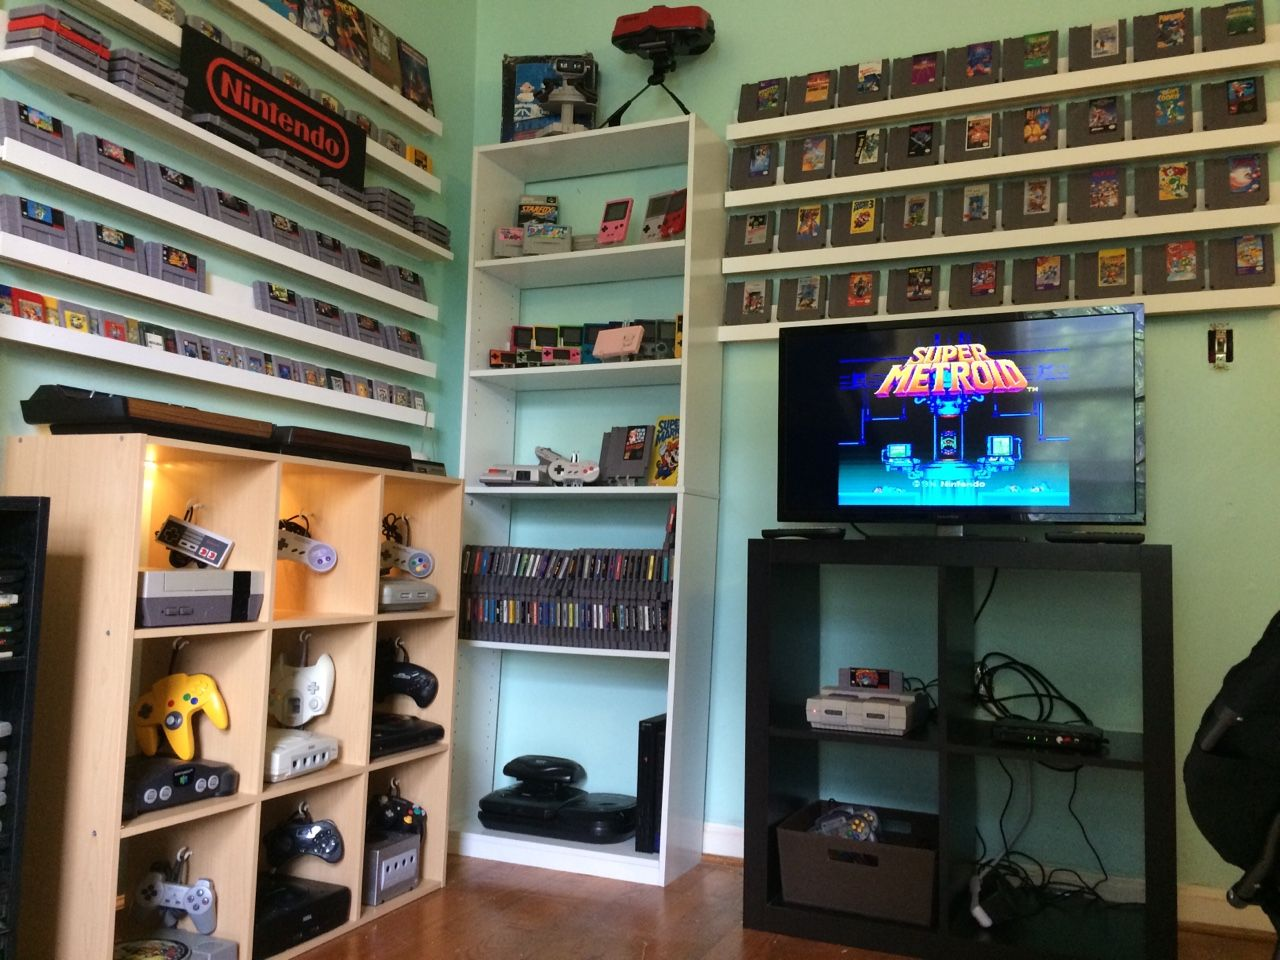 Retro Game Room Version 2 I Needed To Patch The Walls And Paint So